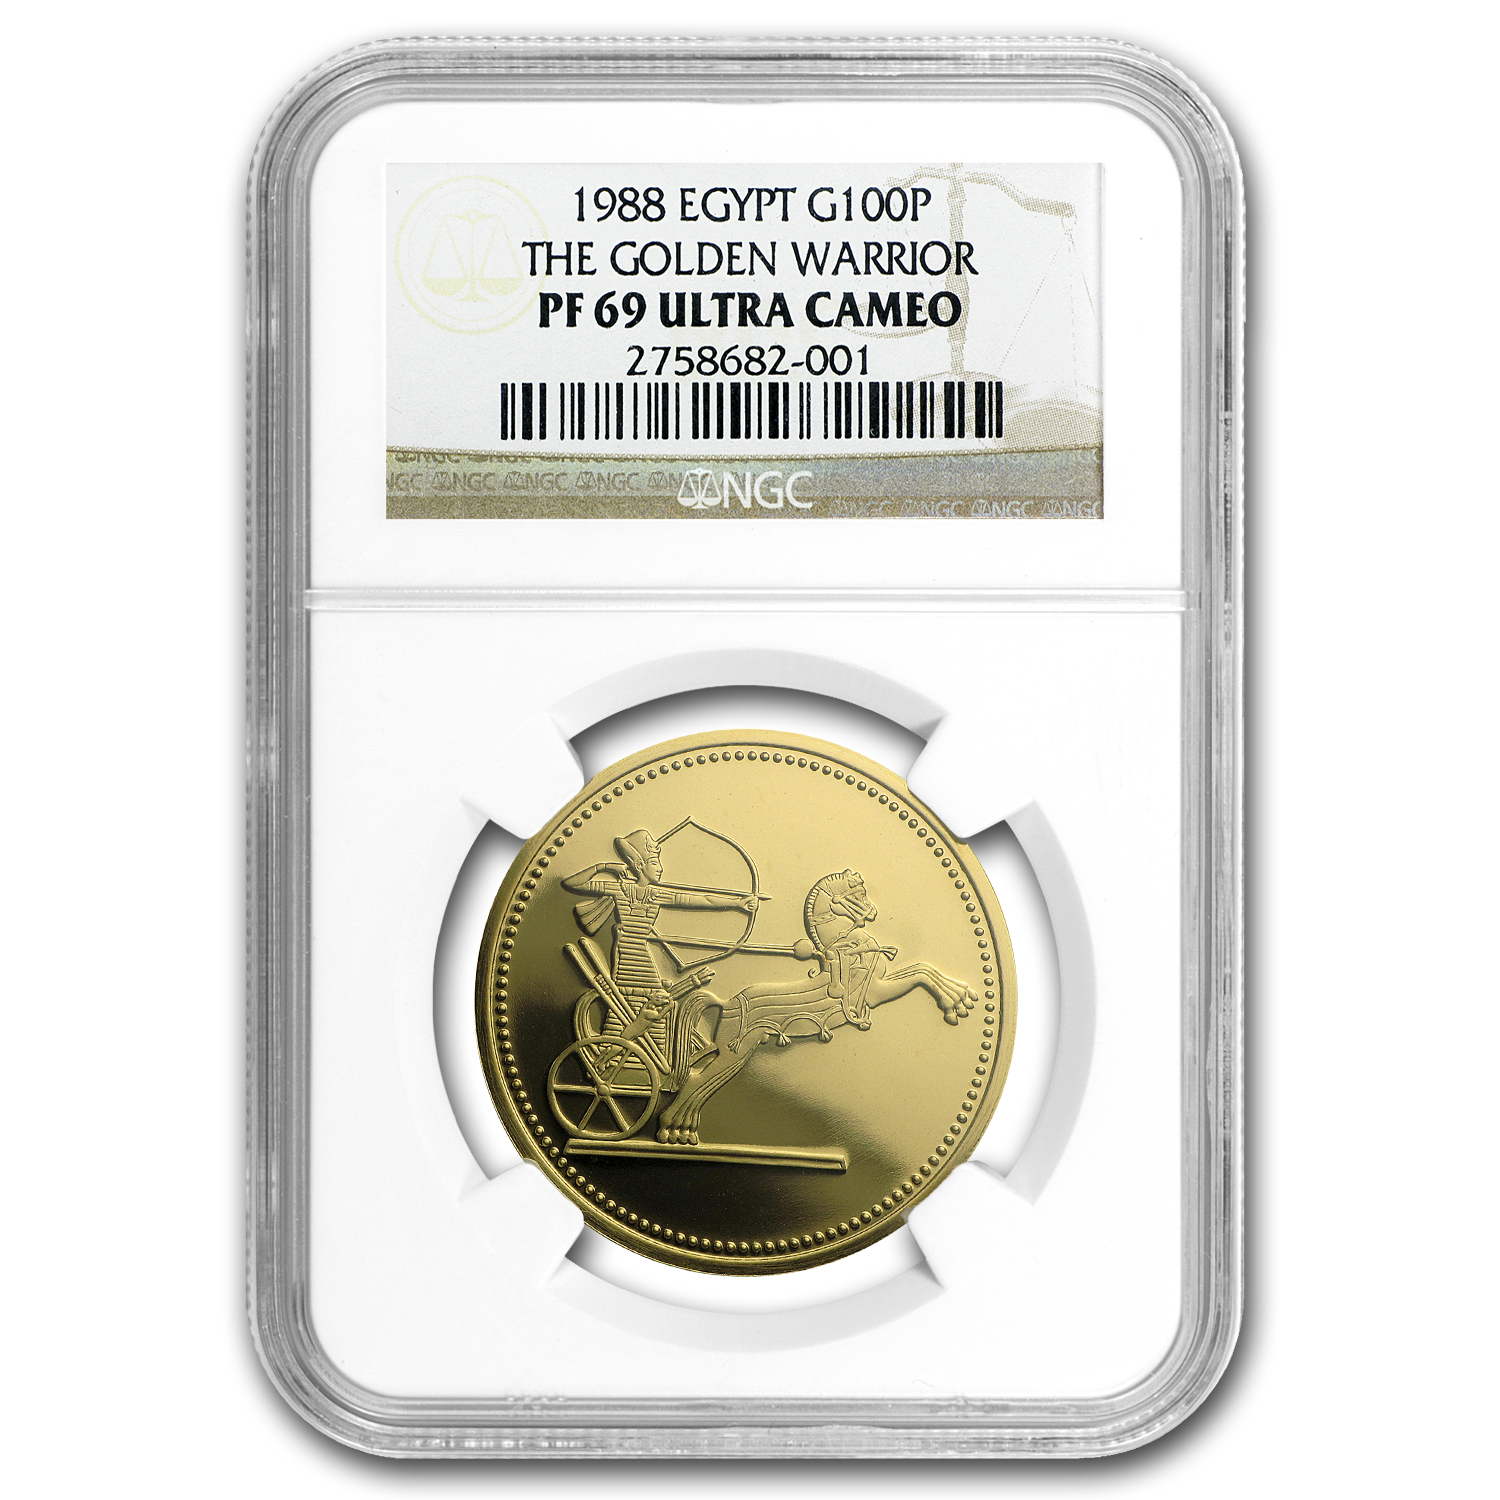 AH1408/1988 Egypt Proof Gold 100 Pound Golden Warrior PF-69 NGC